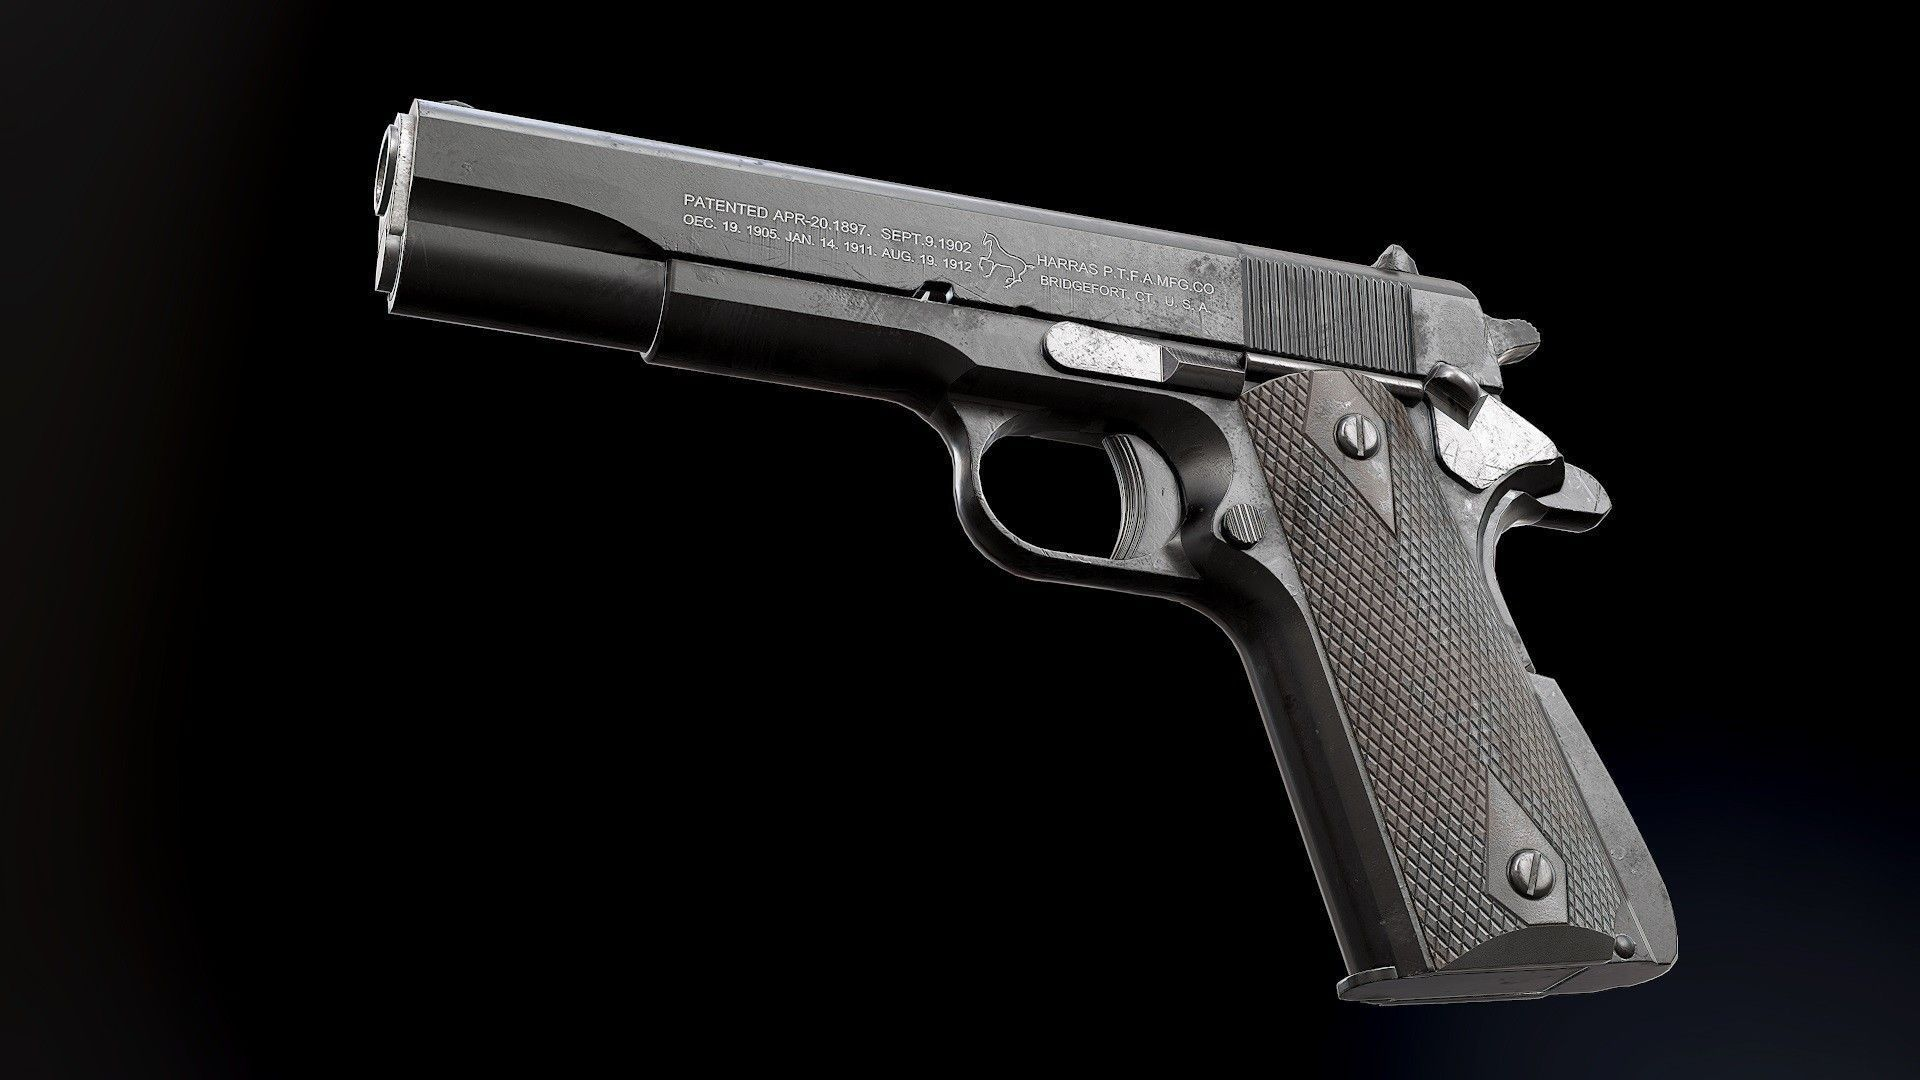 Colt 1911 Black and Chrome - Model and Textures | 3D model